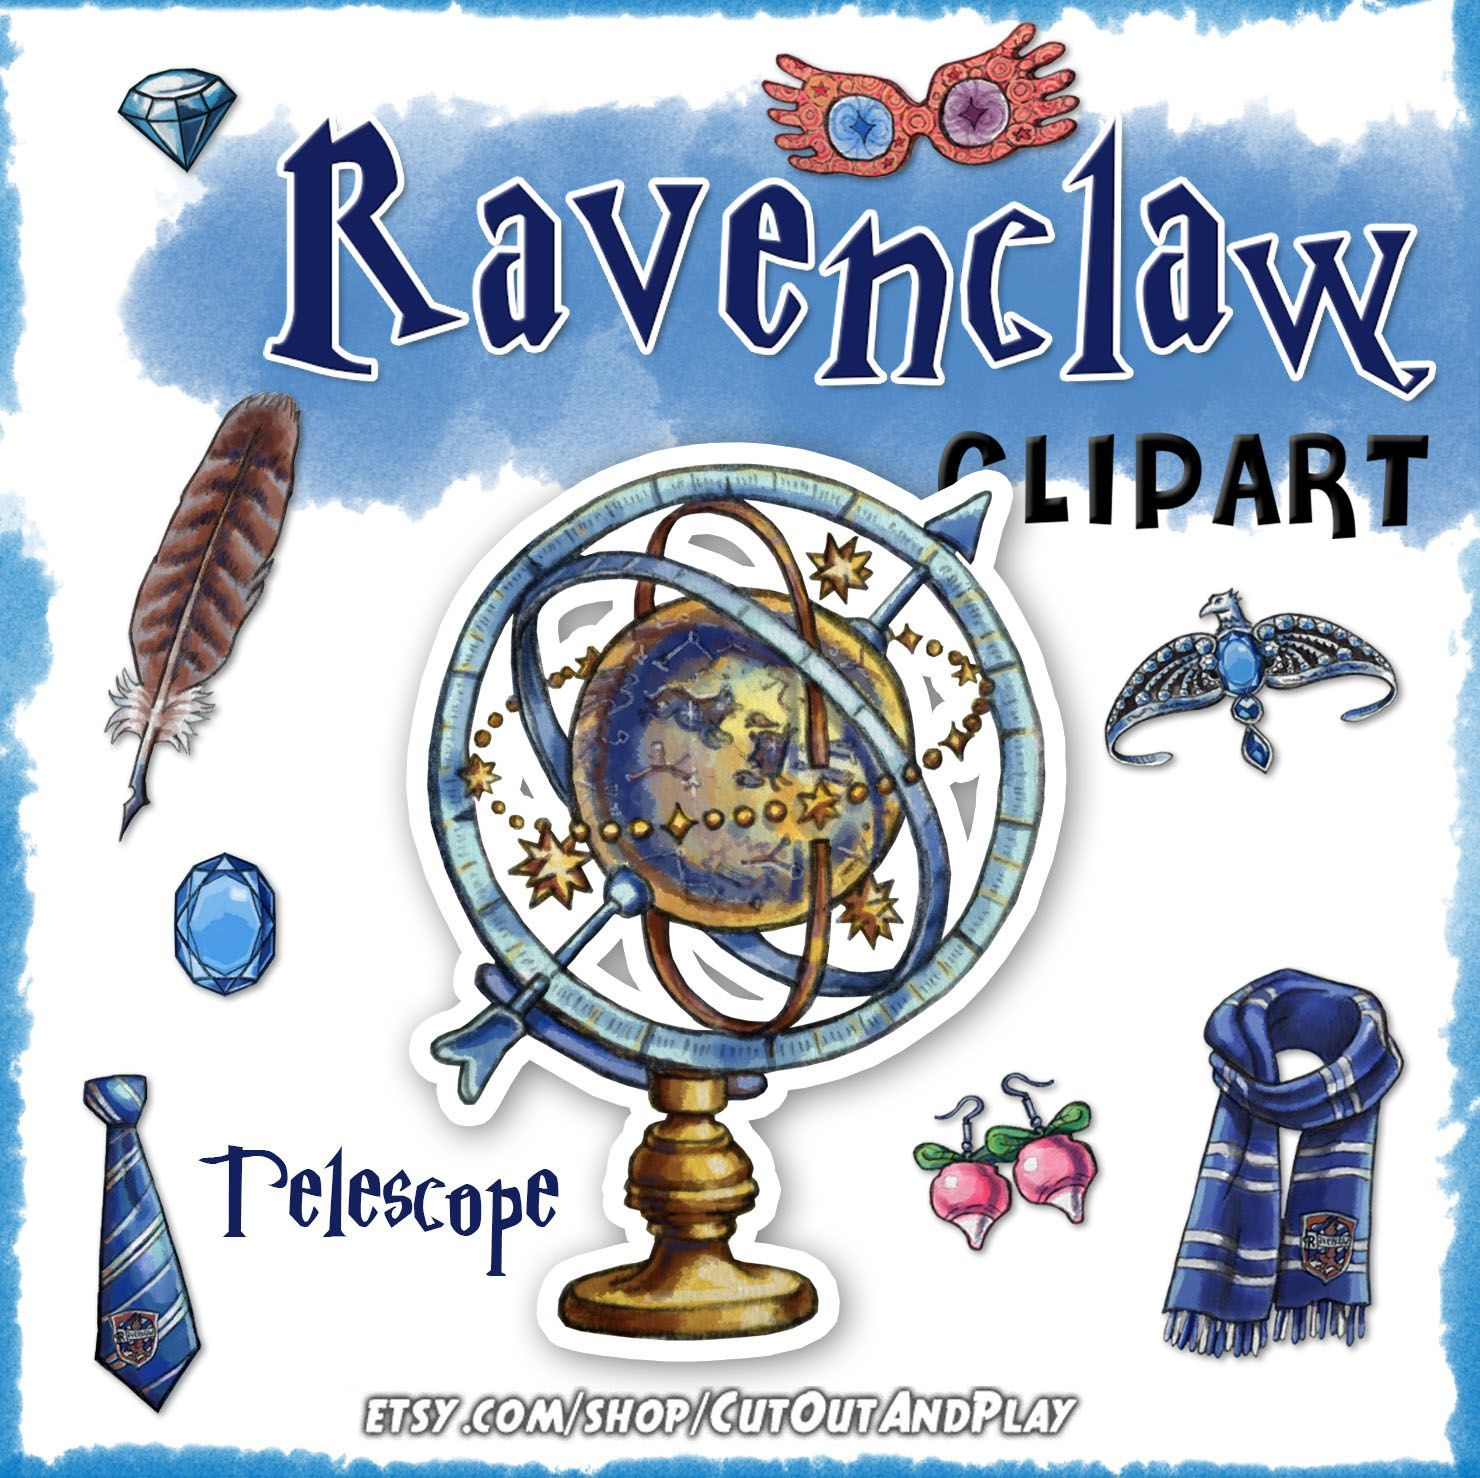 Ravenclaw clipart, Harry Potter clipart, Harry potter party.